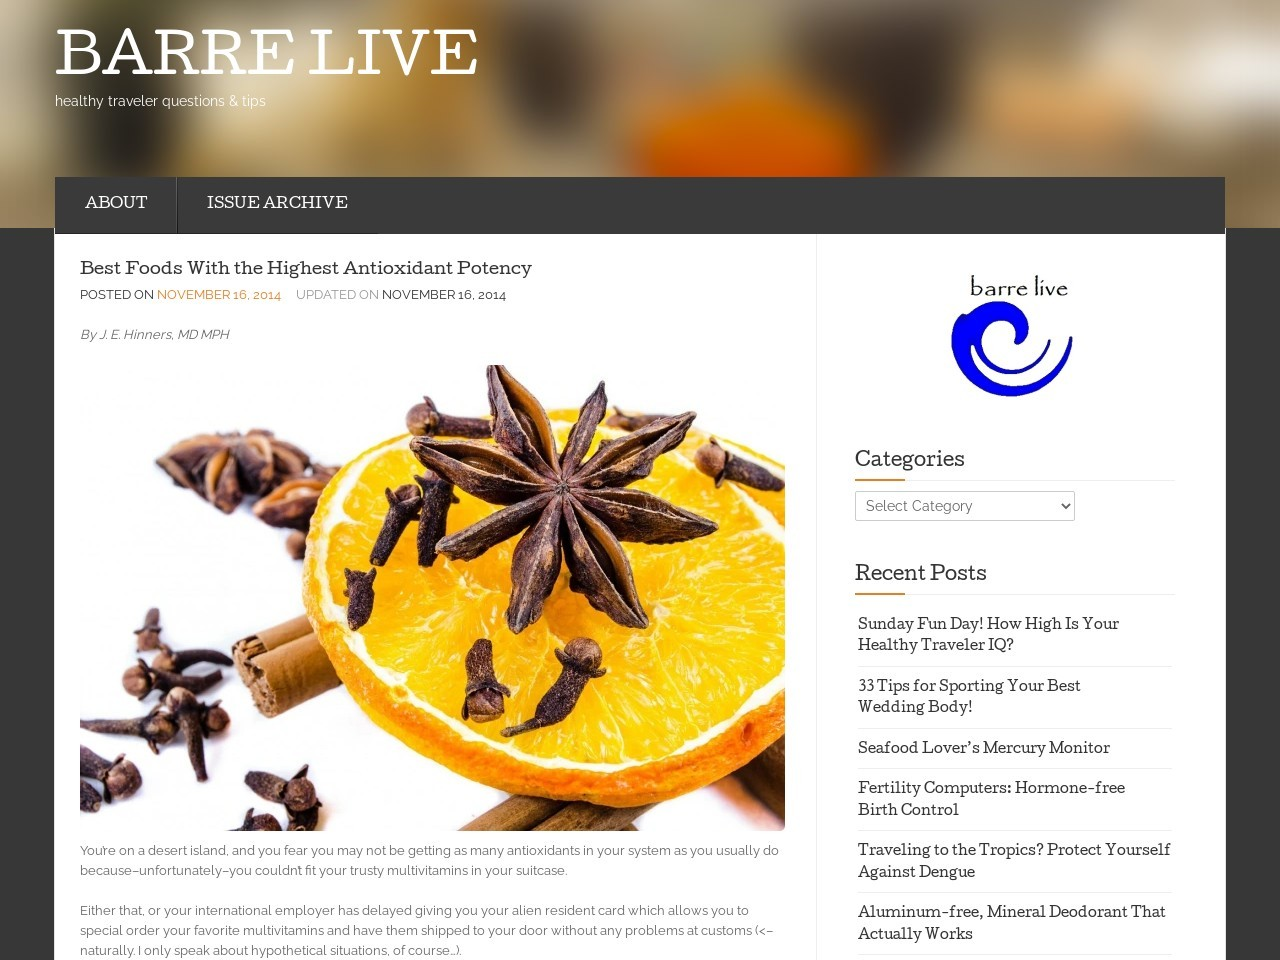 Best Foods With the Highest Antioxidant Potency … – barre live